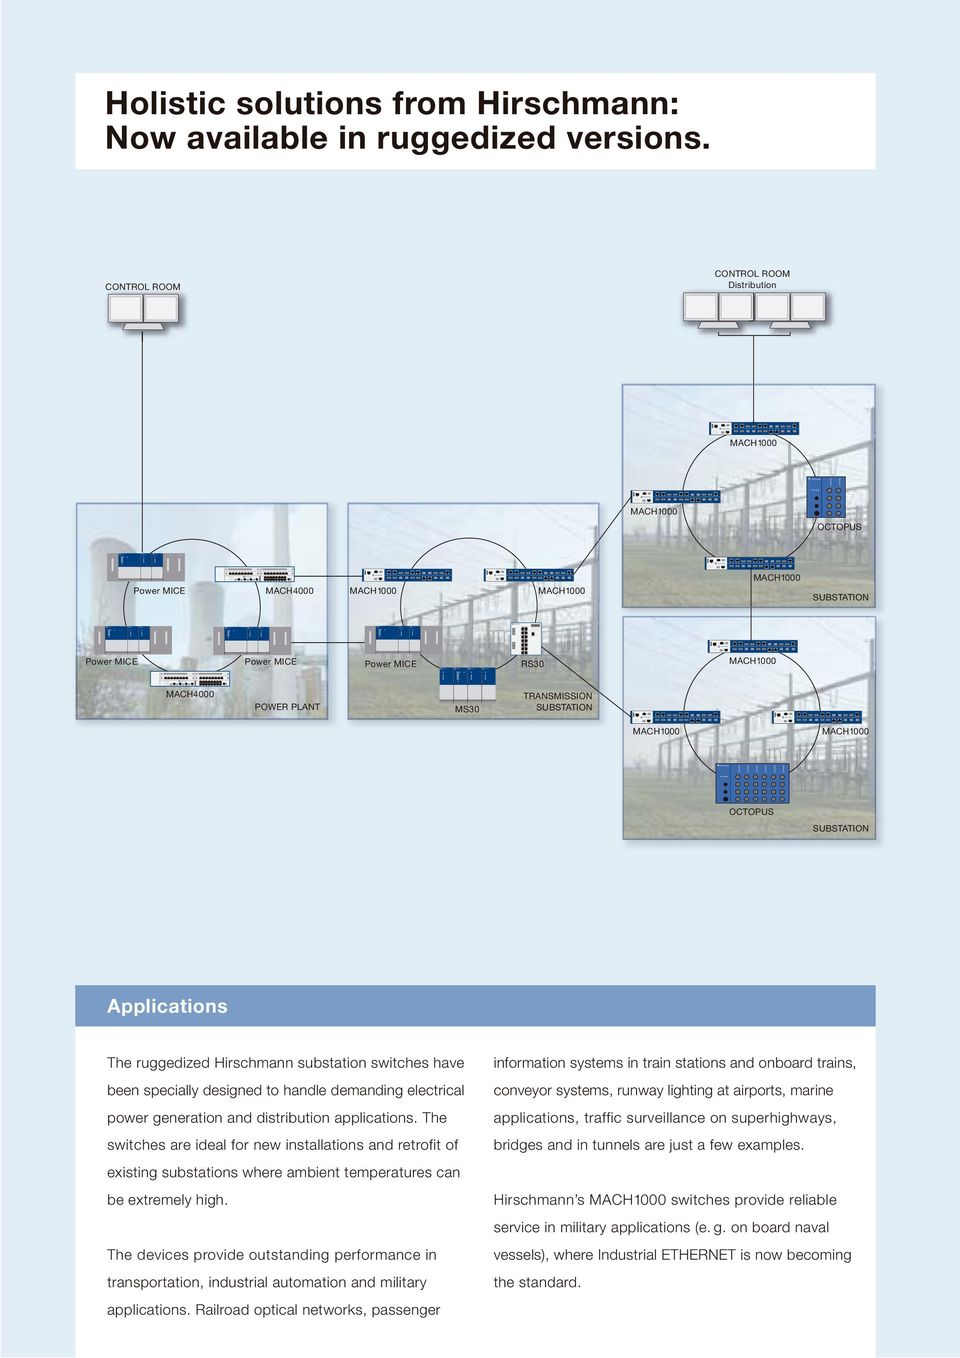 ruggedized irschmann substation switches have been specially designed to handle demanding electrical power generation and distribution applications.